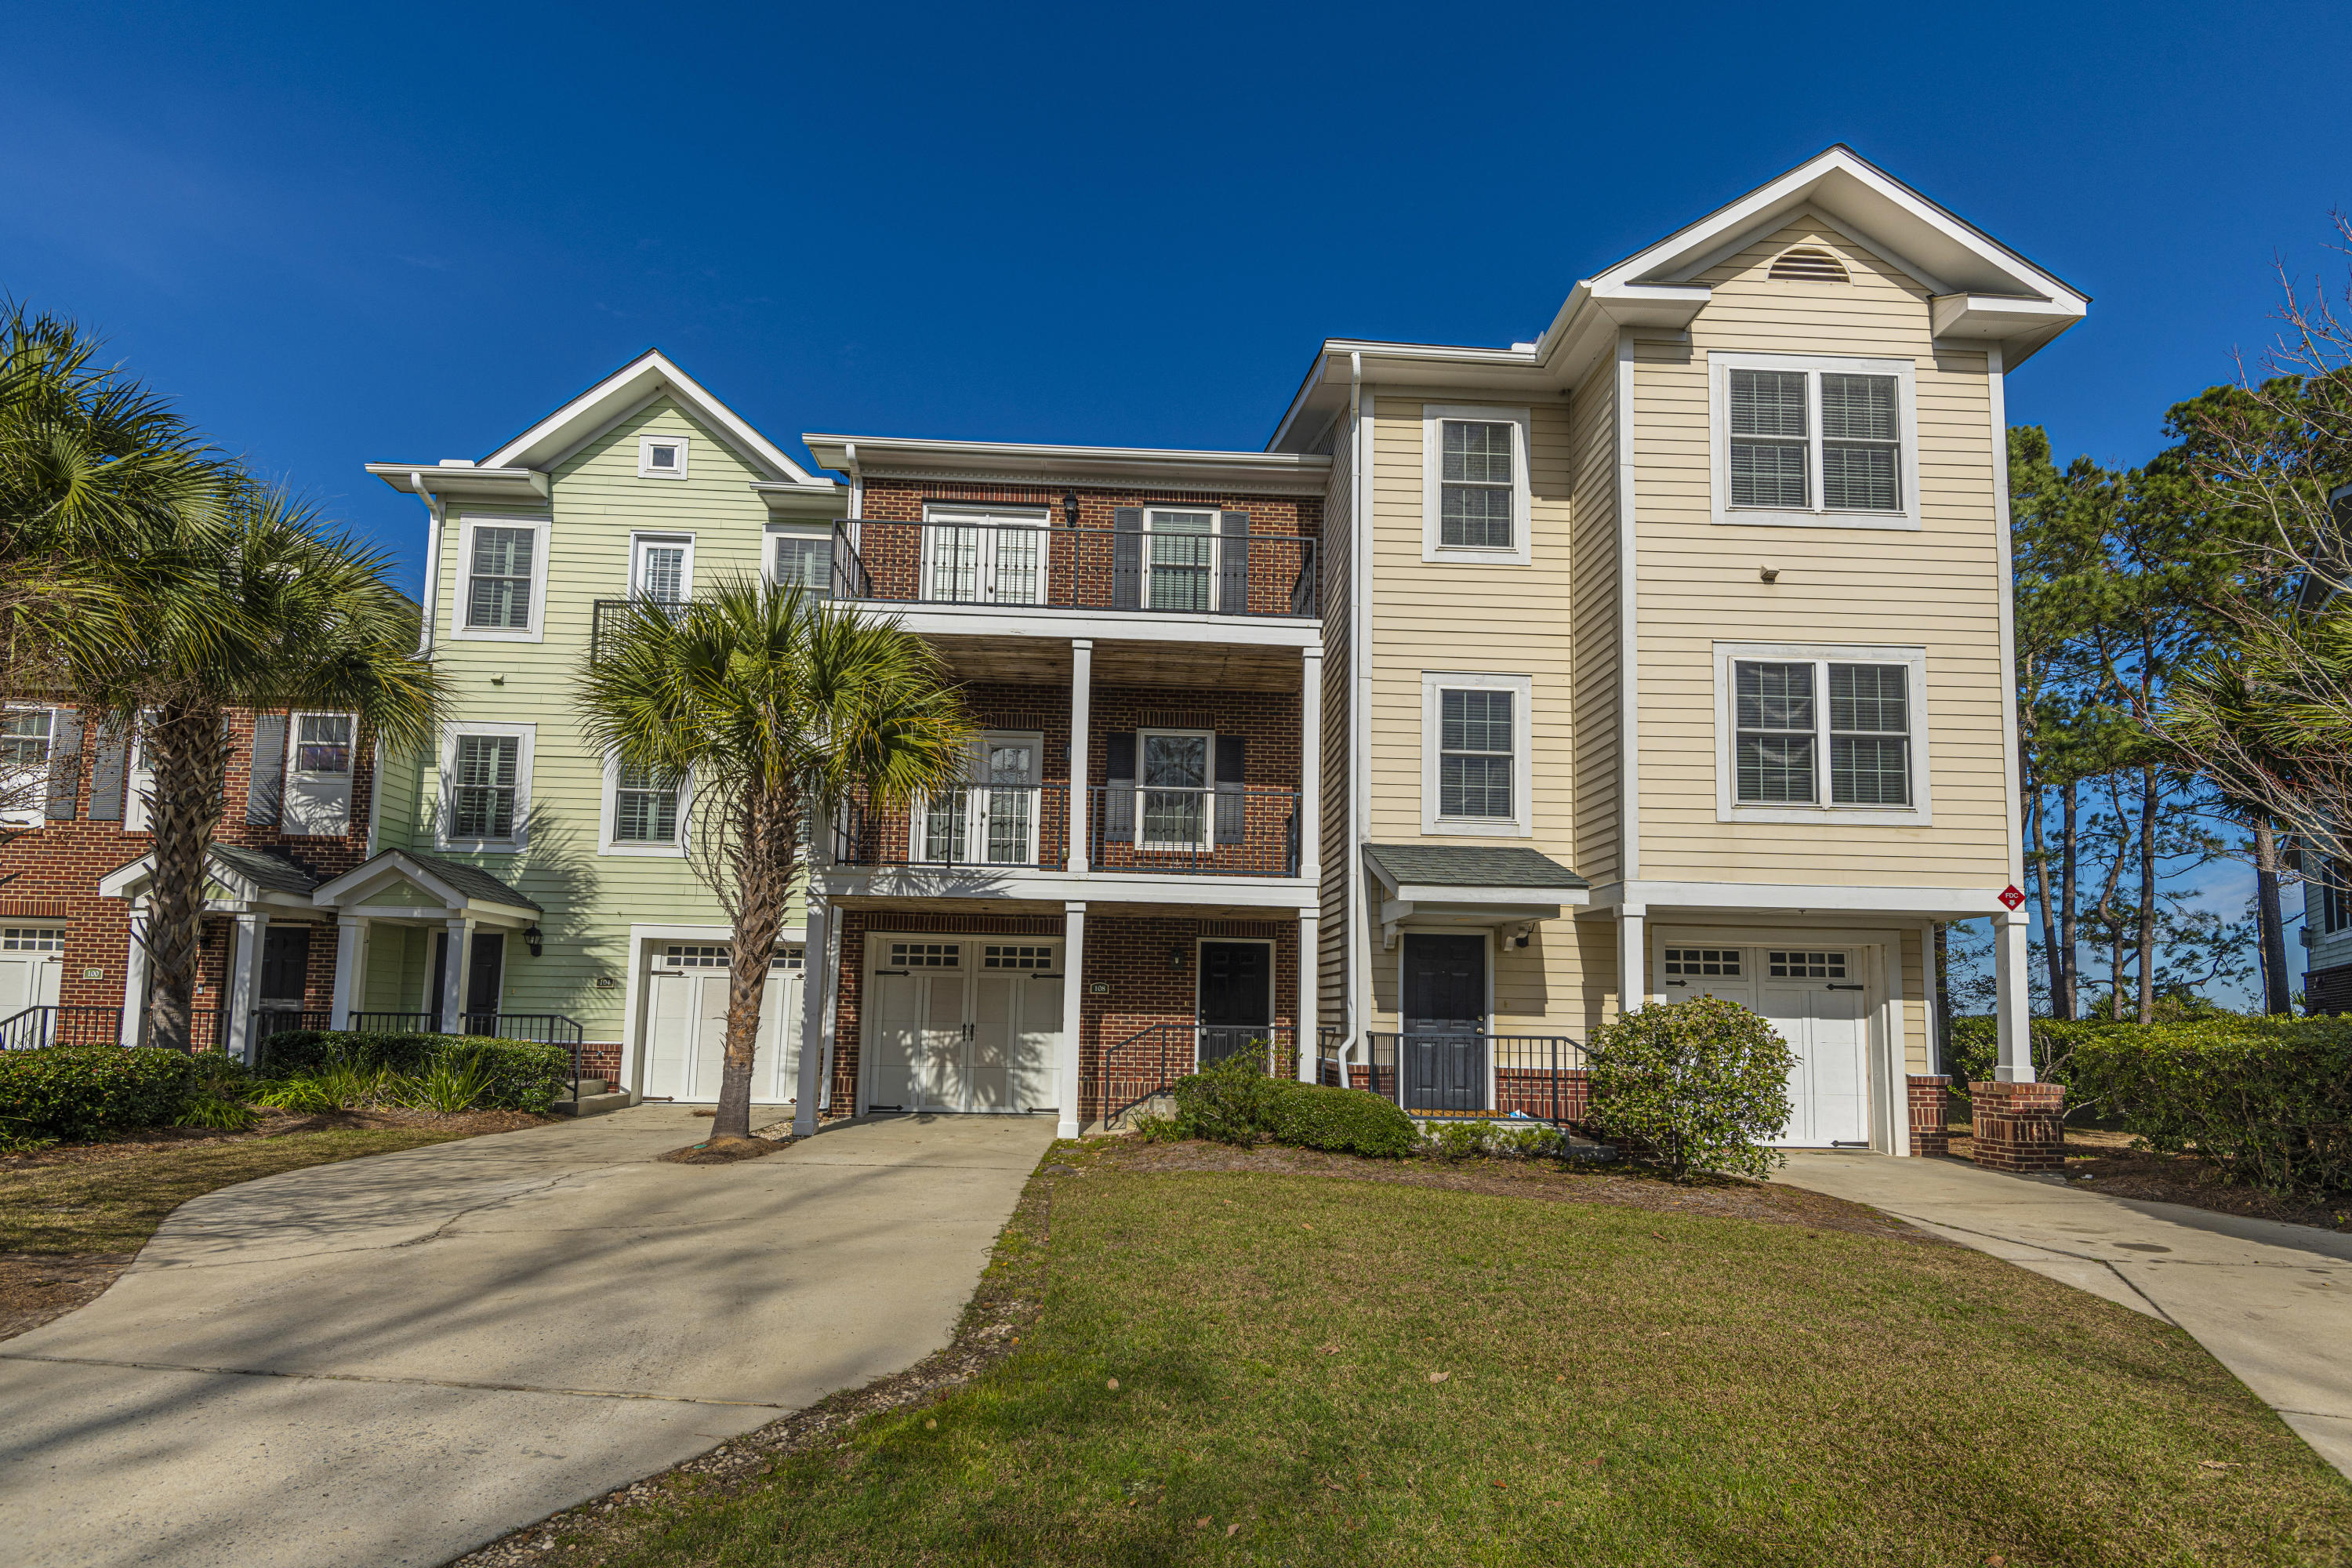 108 112-3 Winding Creek Court Mount Pleasant, SC 29464